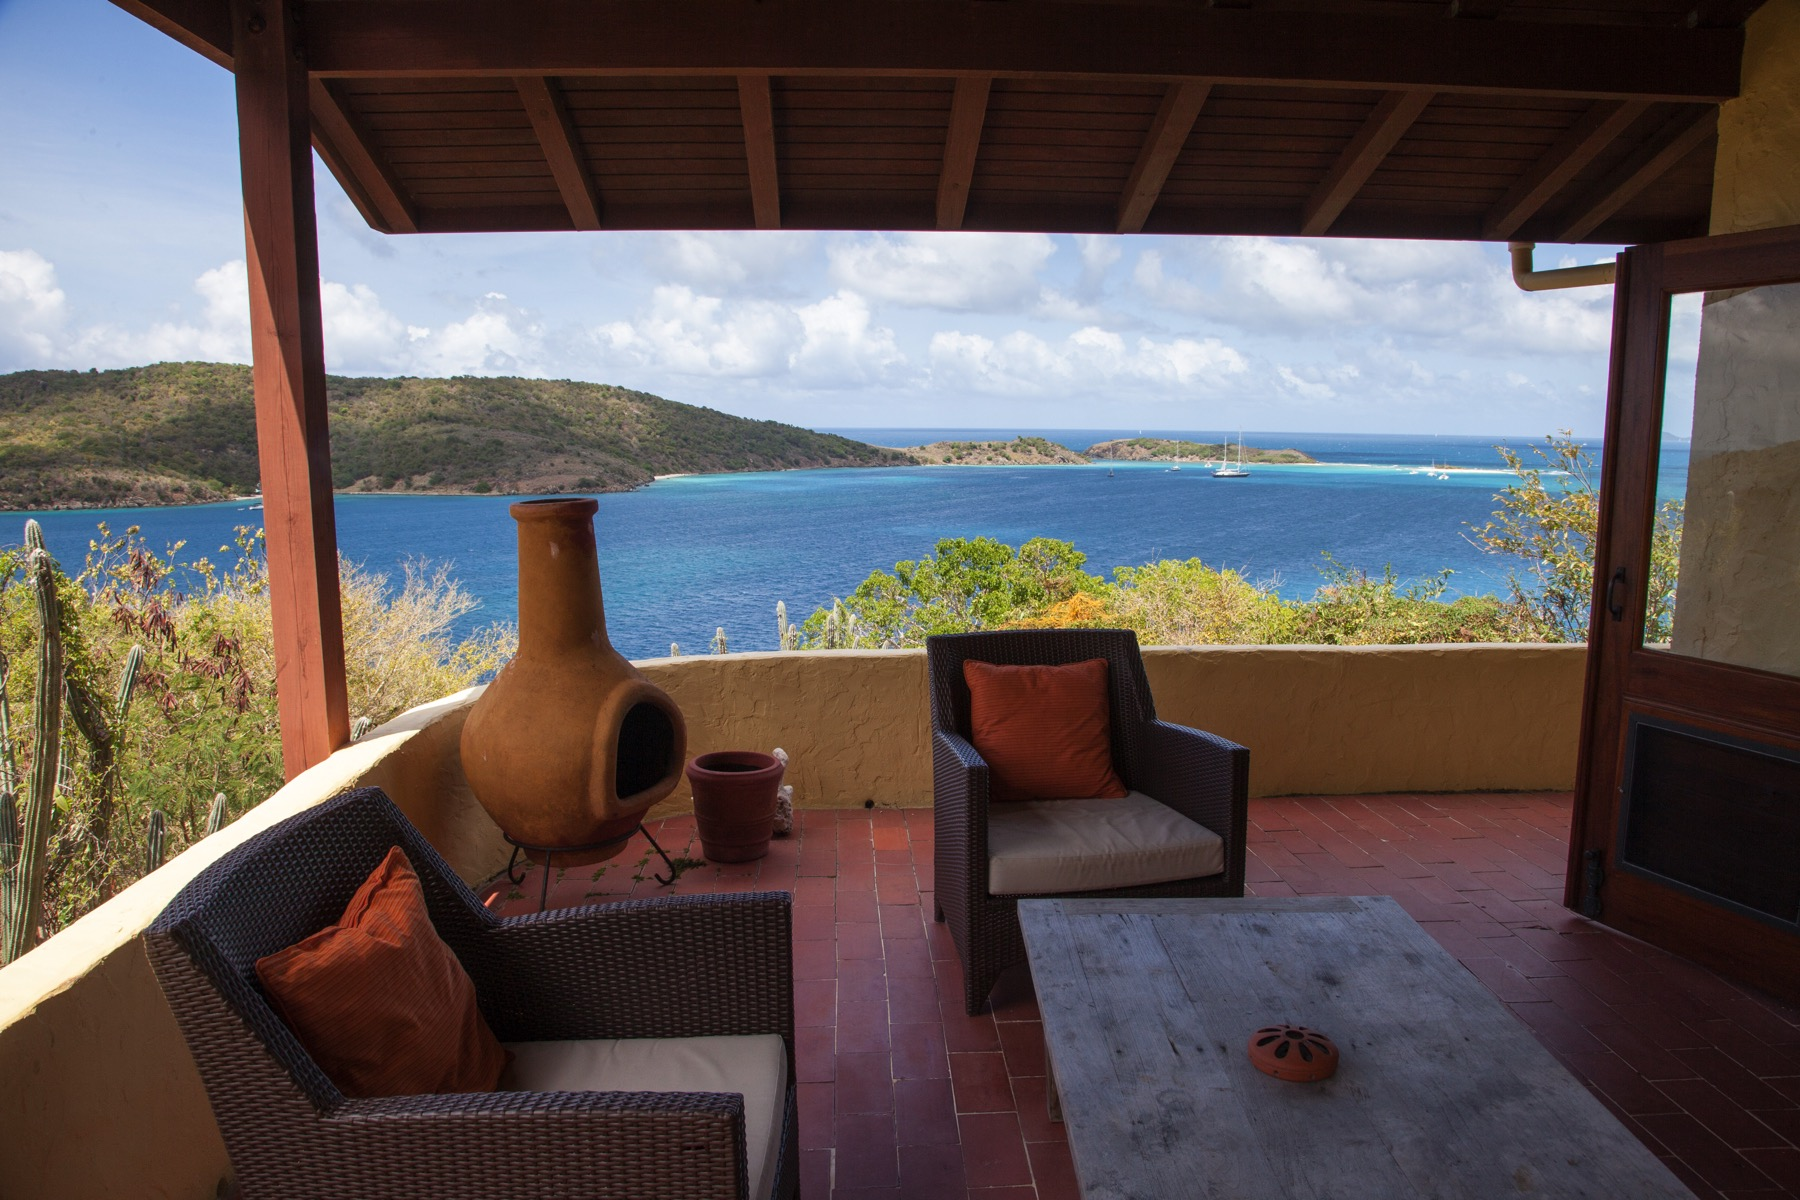 Single Family Home for Sale at Diamond View Sandy Ground, Jost Van Dyke British Virgin Islands